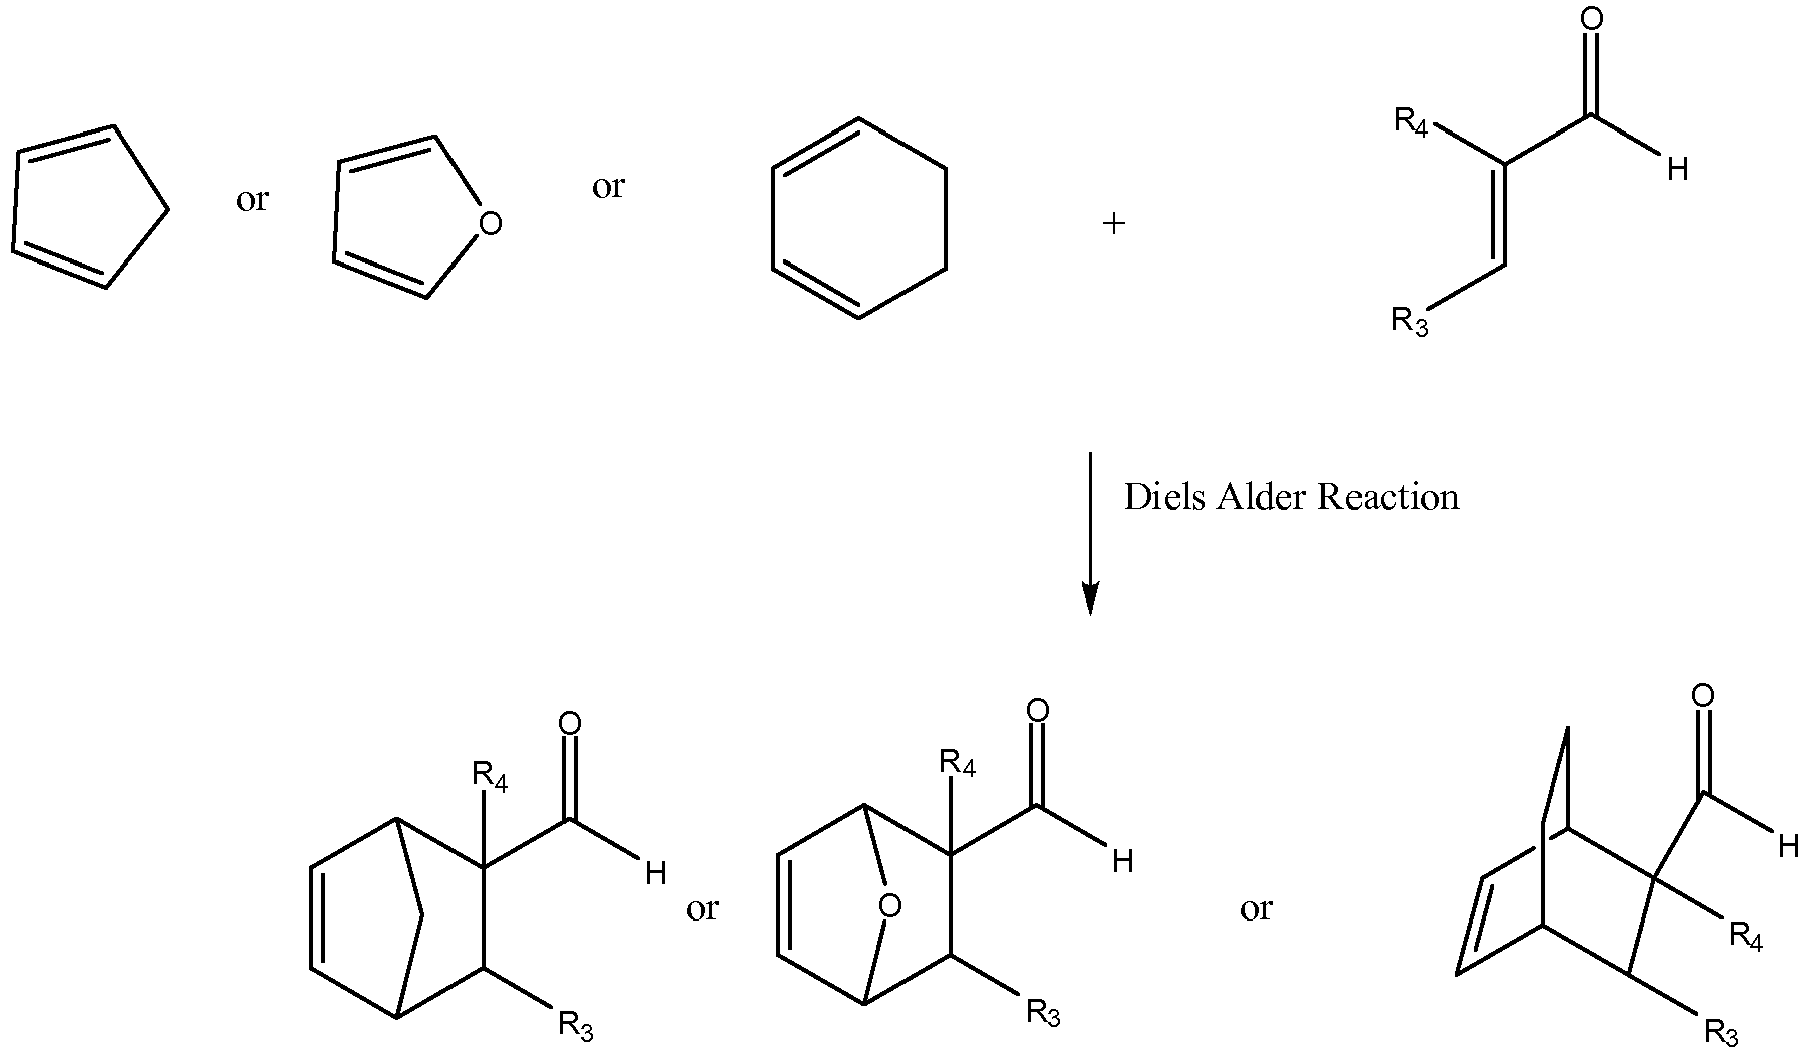 diels alder retrosynthesis A problem-solving approach to retrosynthesis is introduced with examples selected according to the functional group that participates in c–c bond disconnection or is interconverted the key retrosynthetic steps suggest important synthetic reactions, such as diels–alder, cyanhydrin, wittig and.